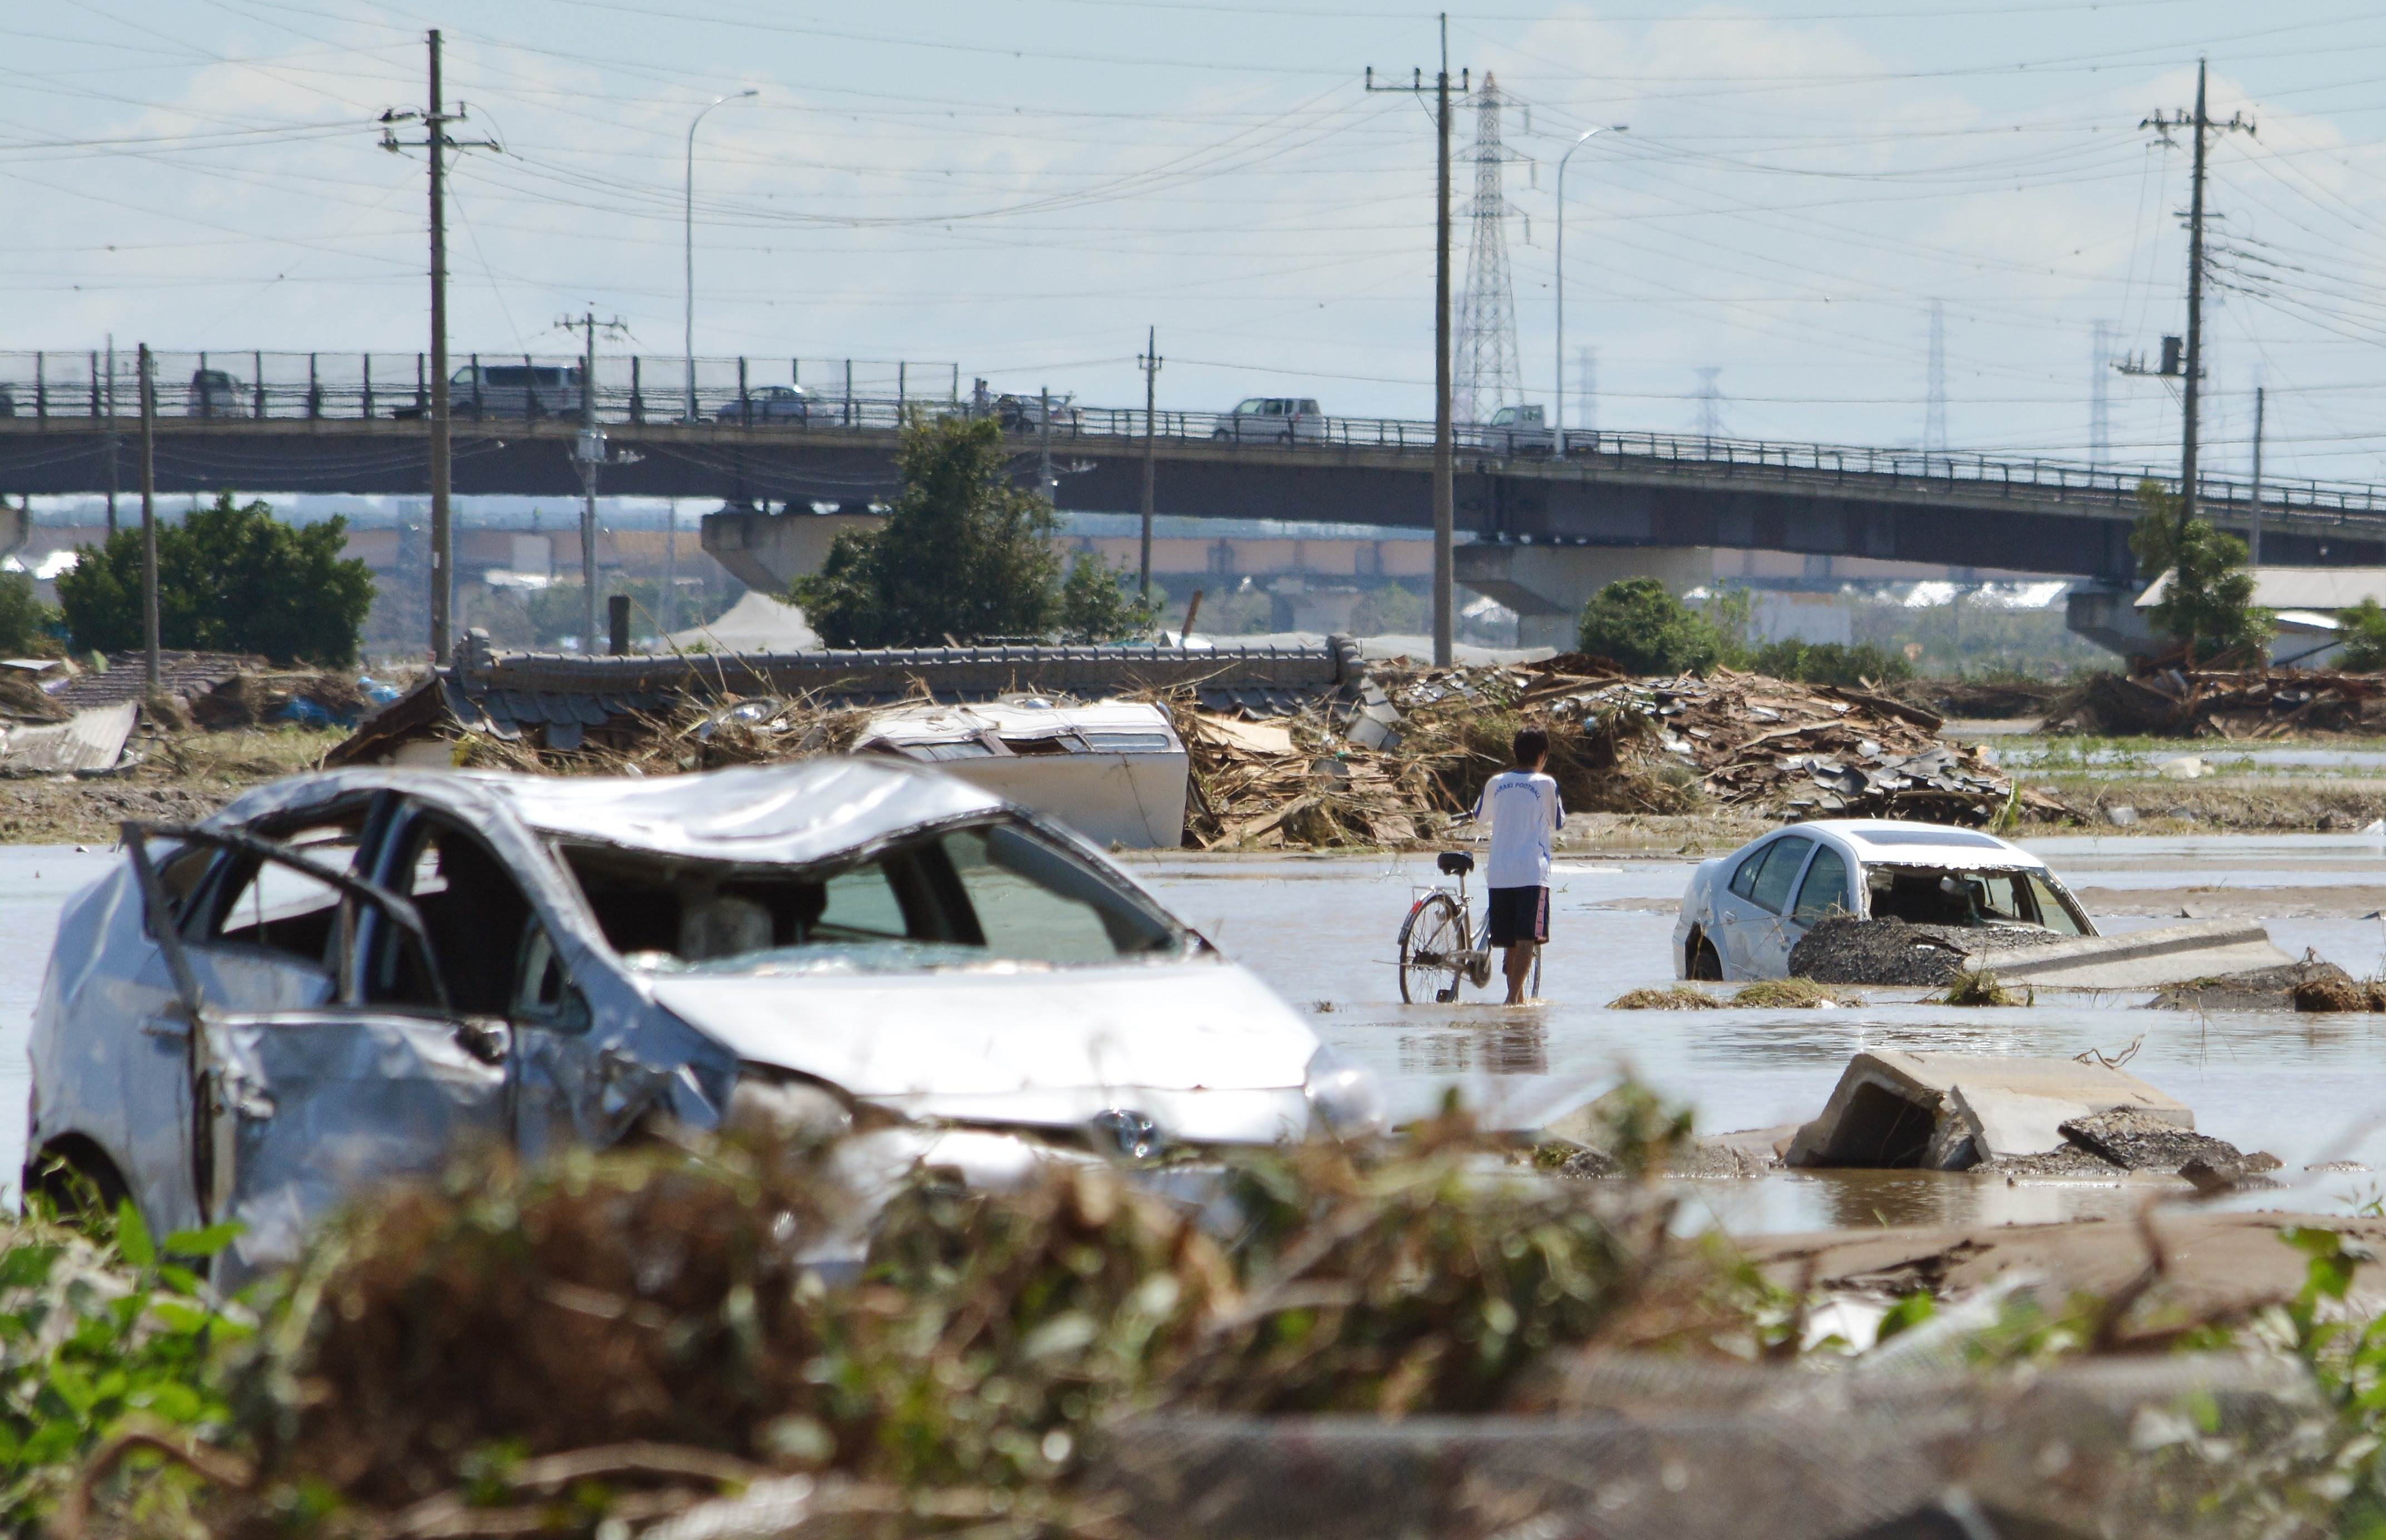 A man pushes his bicycle past stranded vehicles in muddy water in Joso, Ibaraki Prefecture on Friday. Thousands of rescuers arrived Friday to help evacuate hundreds of trapped residents and search for people missing after torrential rains triggered massive flooding.    AFP-JIJI